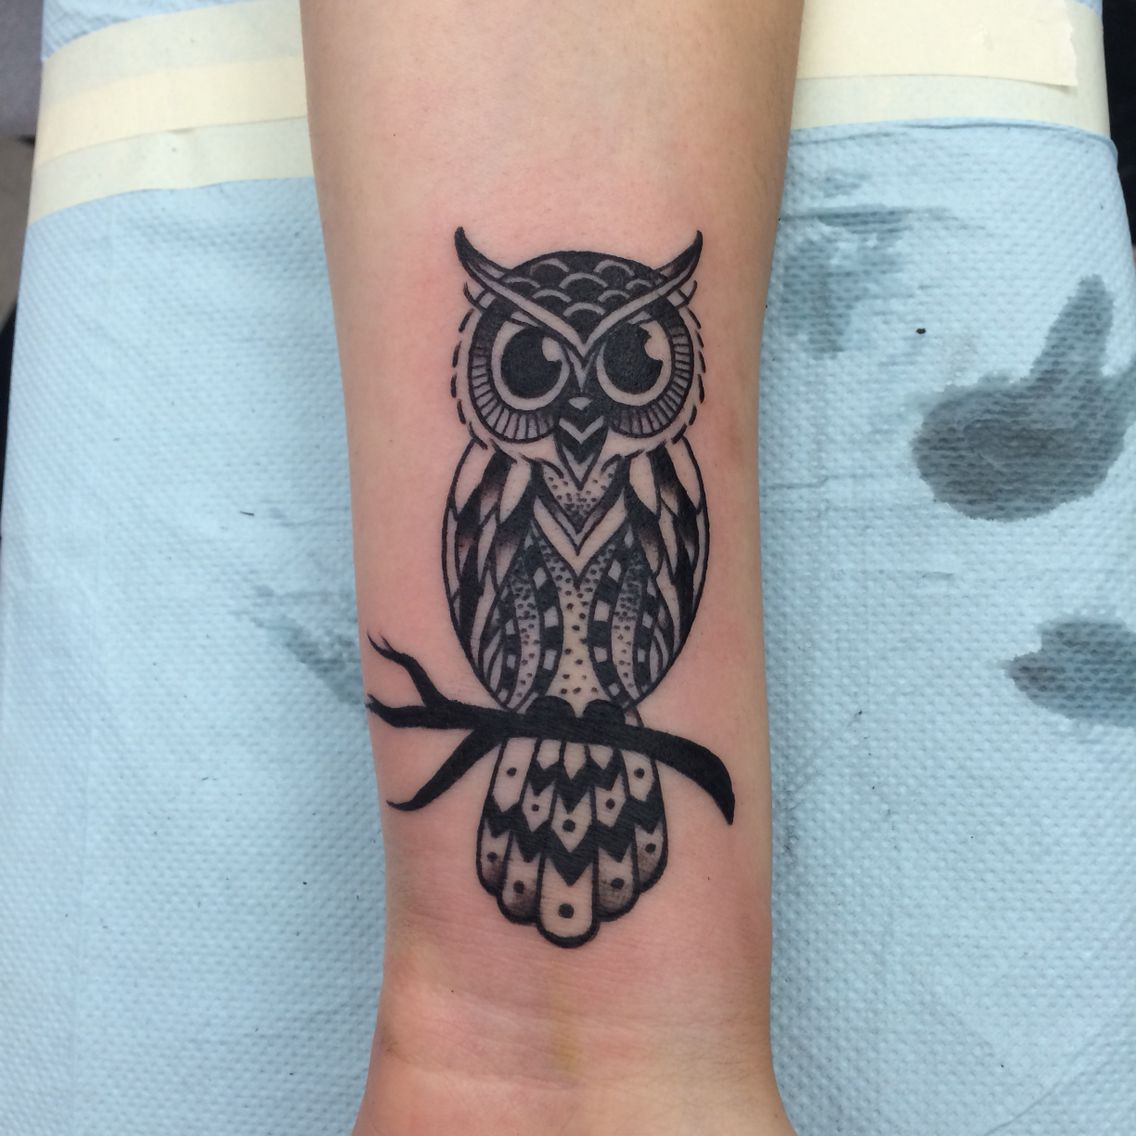 Owl Tattoos On Wrist: This Is My Owl Tattoo Done In All Black With Shading And